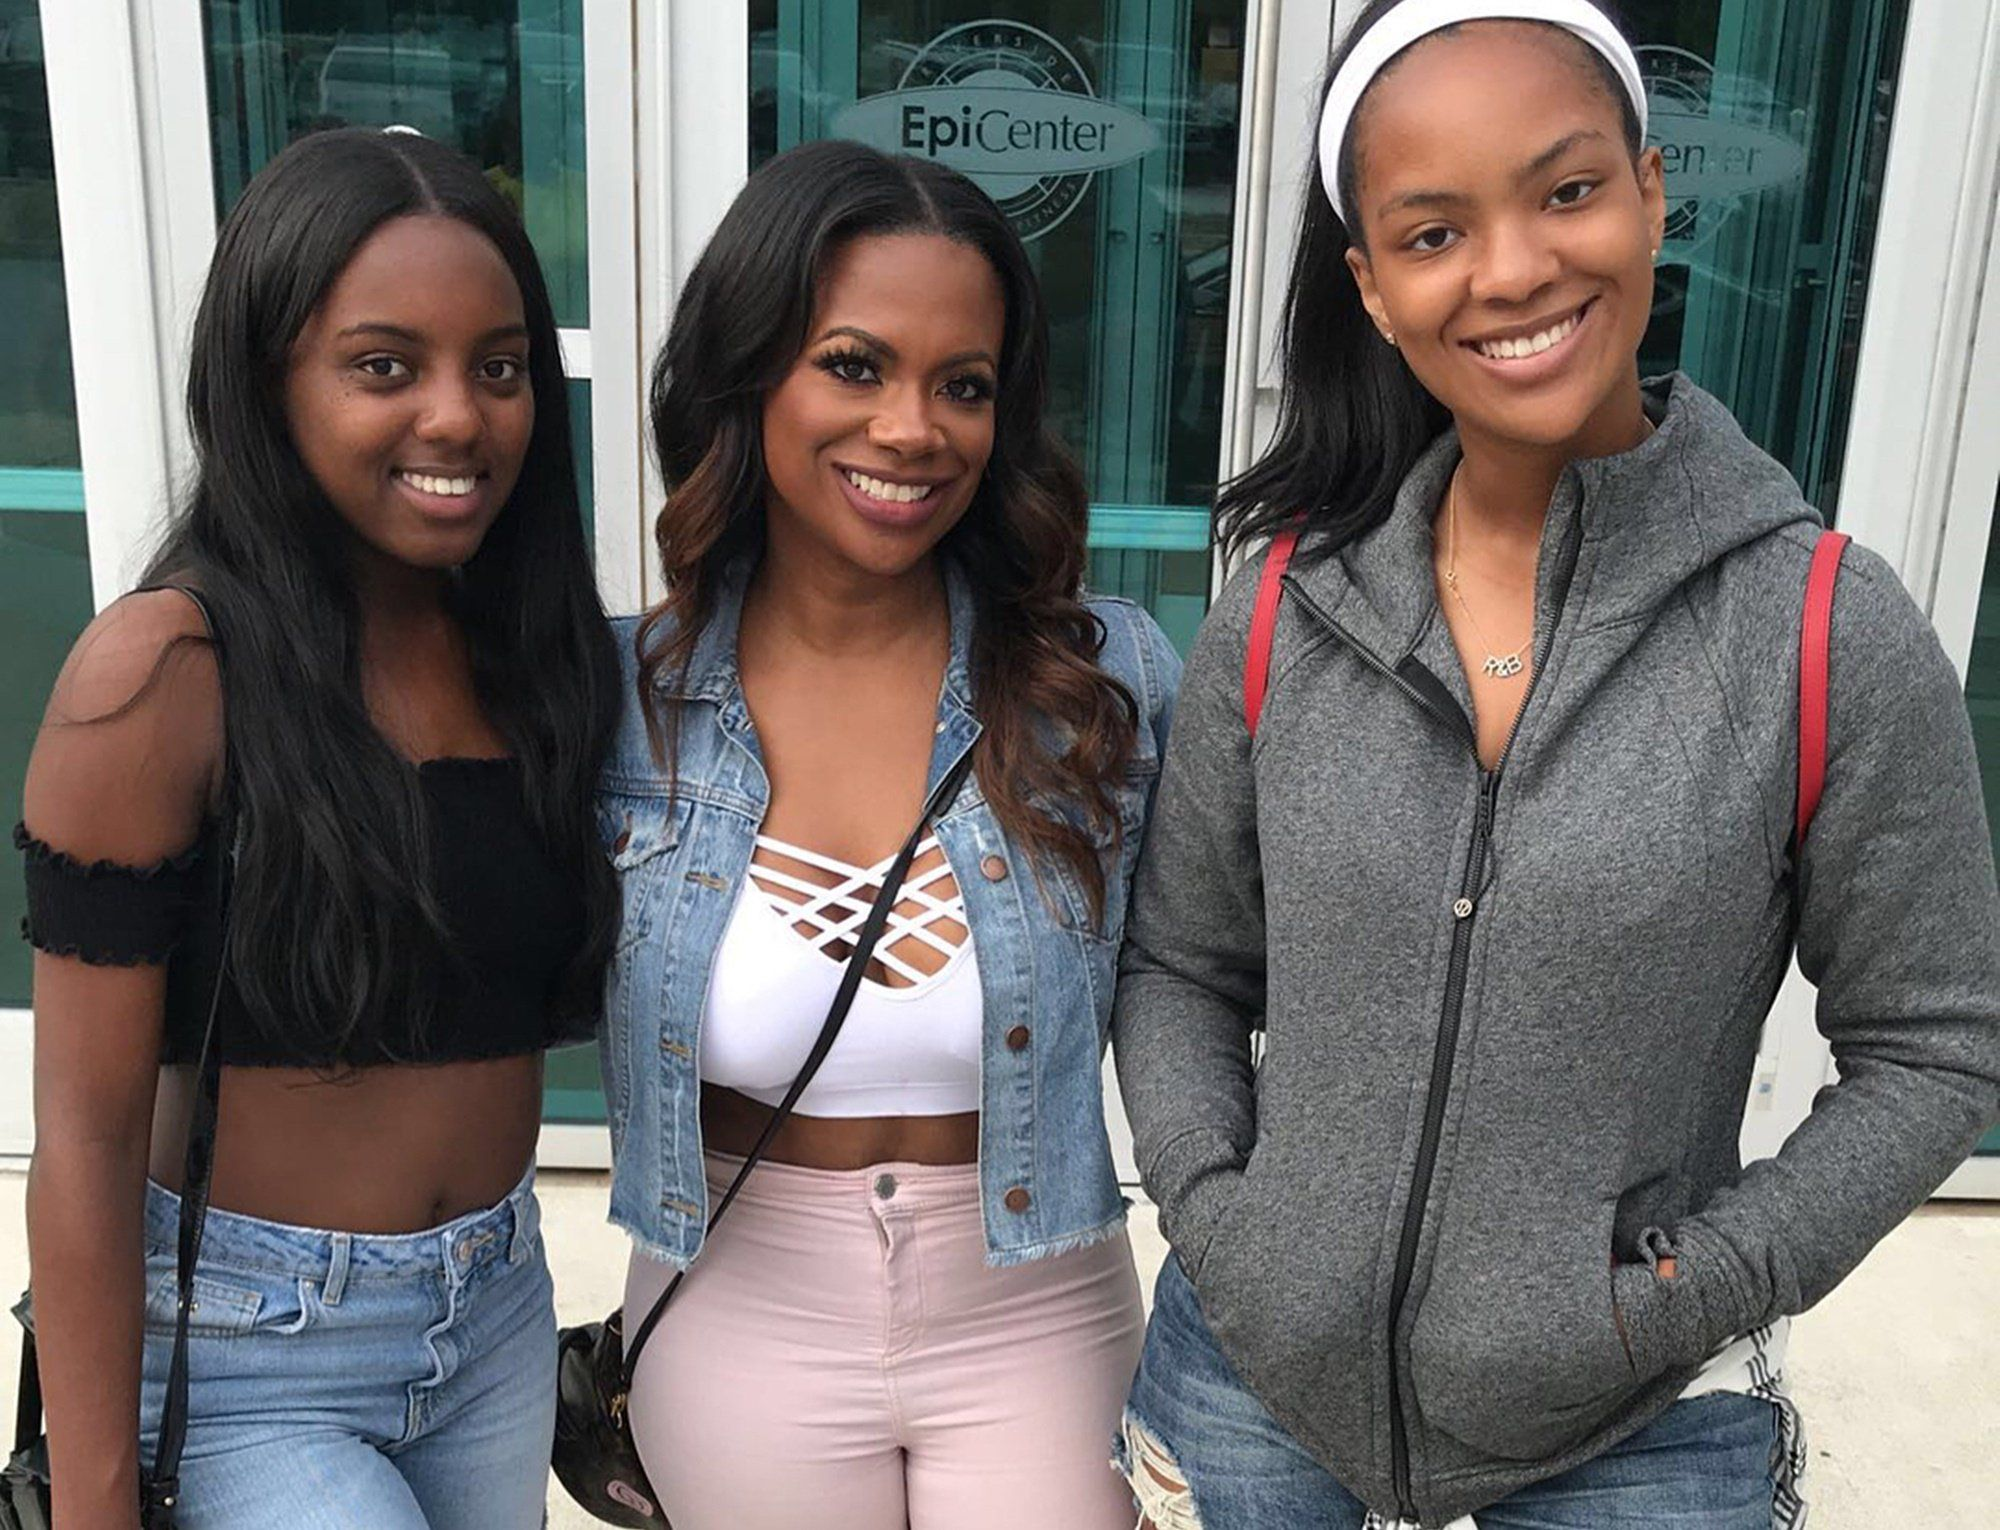 kandi-burruss-makes-fans-happy-with-these-photos-featuring-riley-burruss